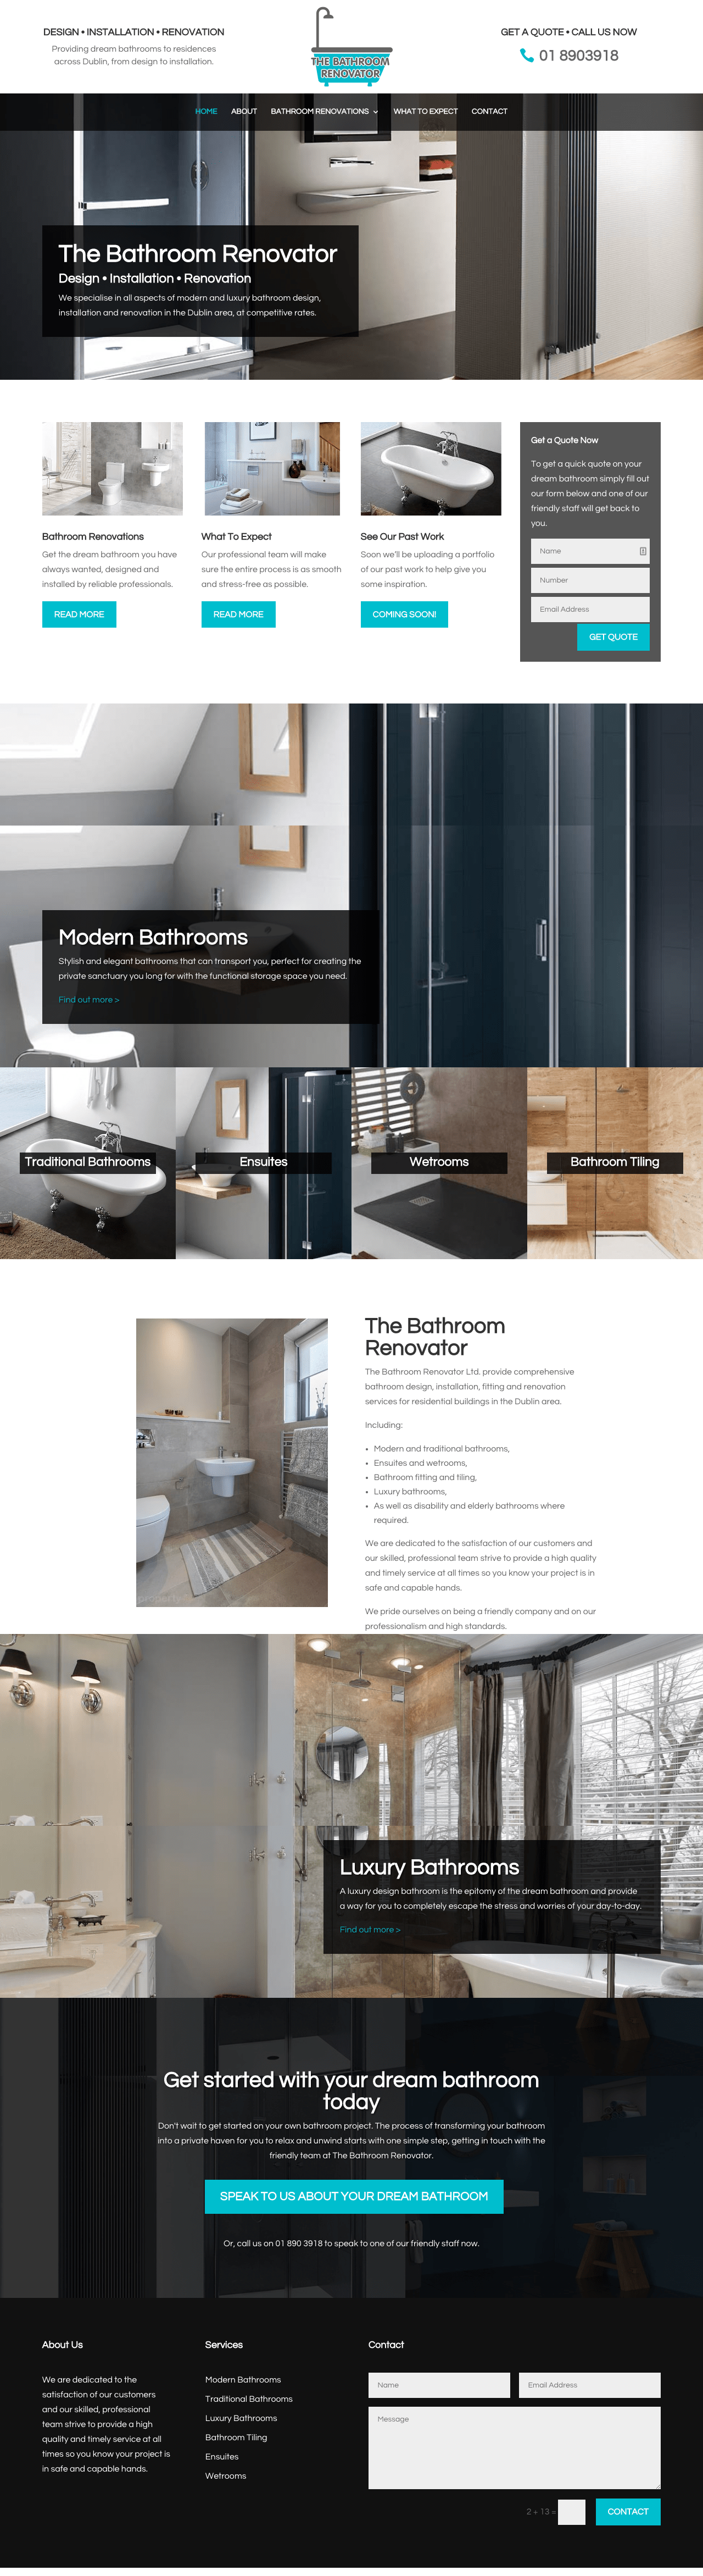 The bathroom renovator full length - Wayworks development Ltd